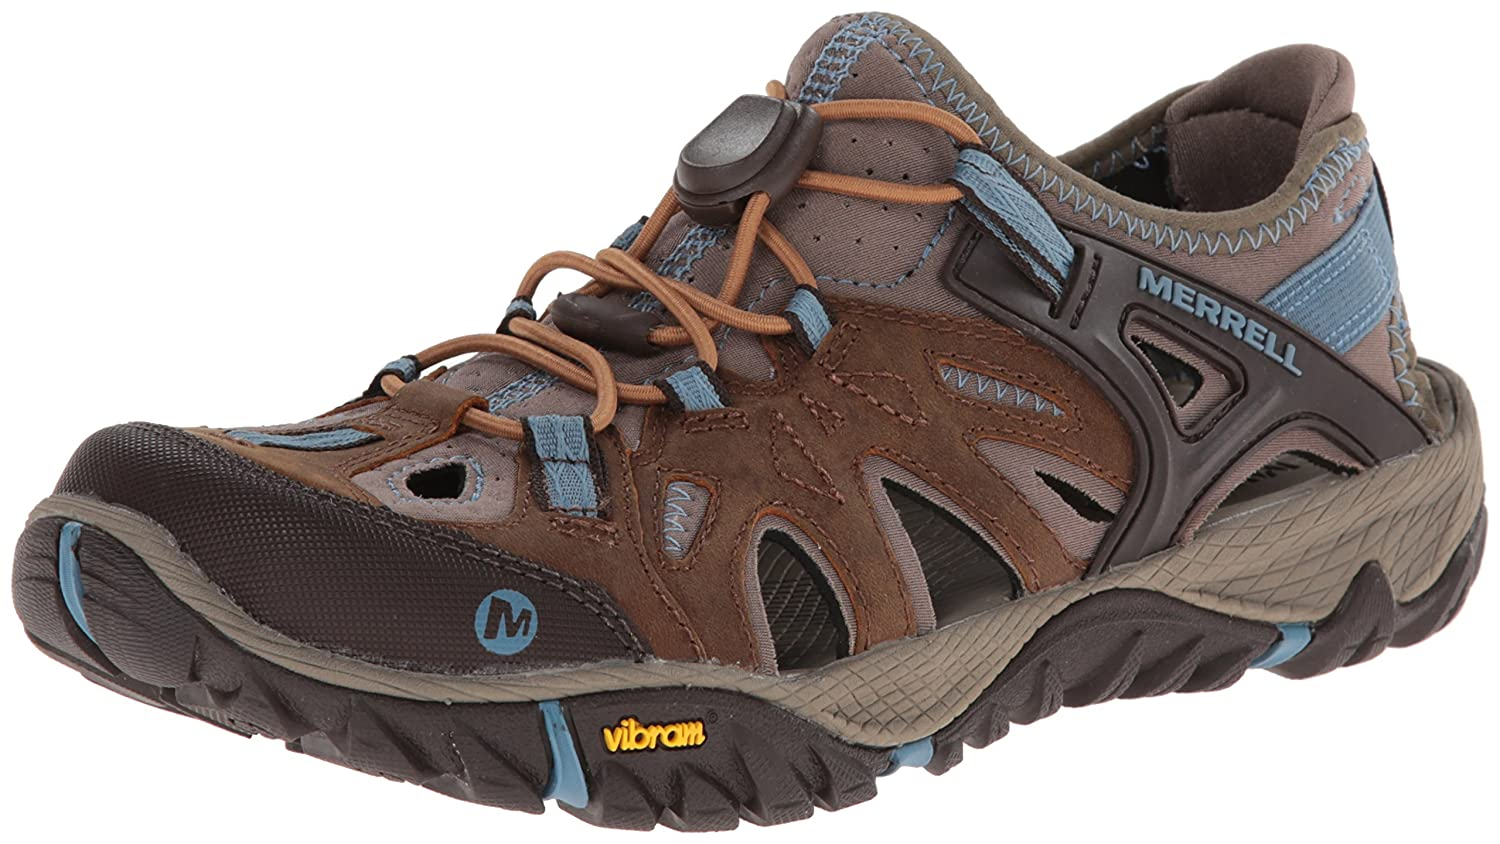 Brown Sugar bluee Heaven Merrell Women's All Out Blaze Sieve Sneakers